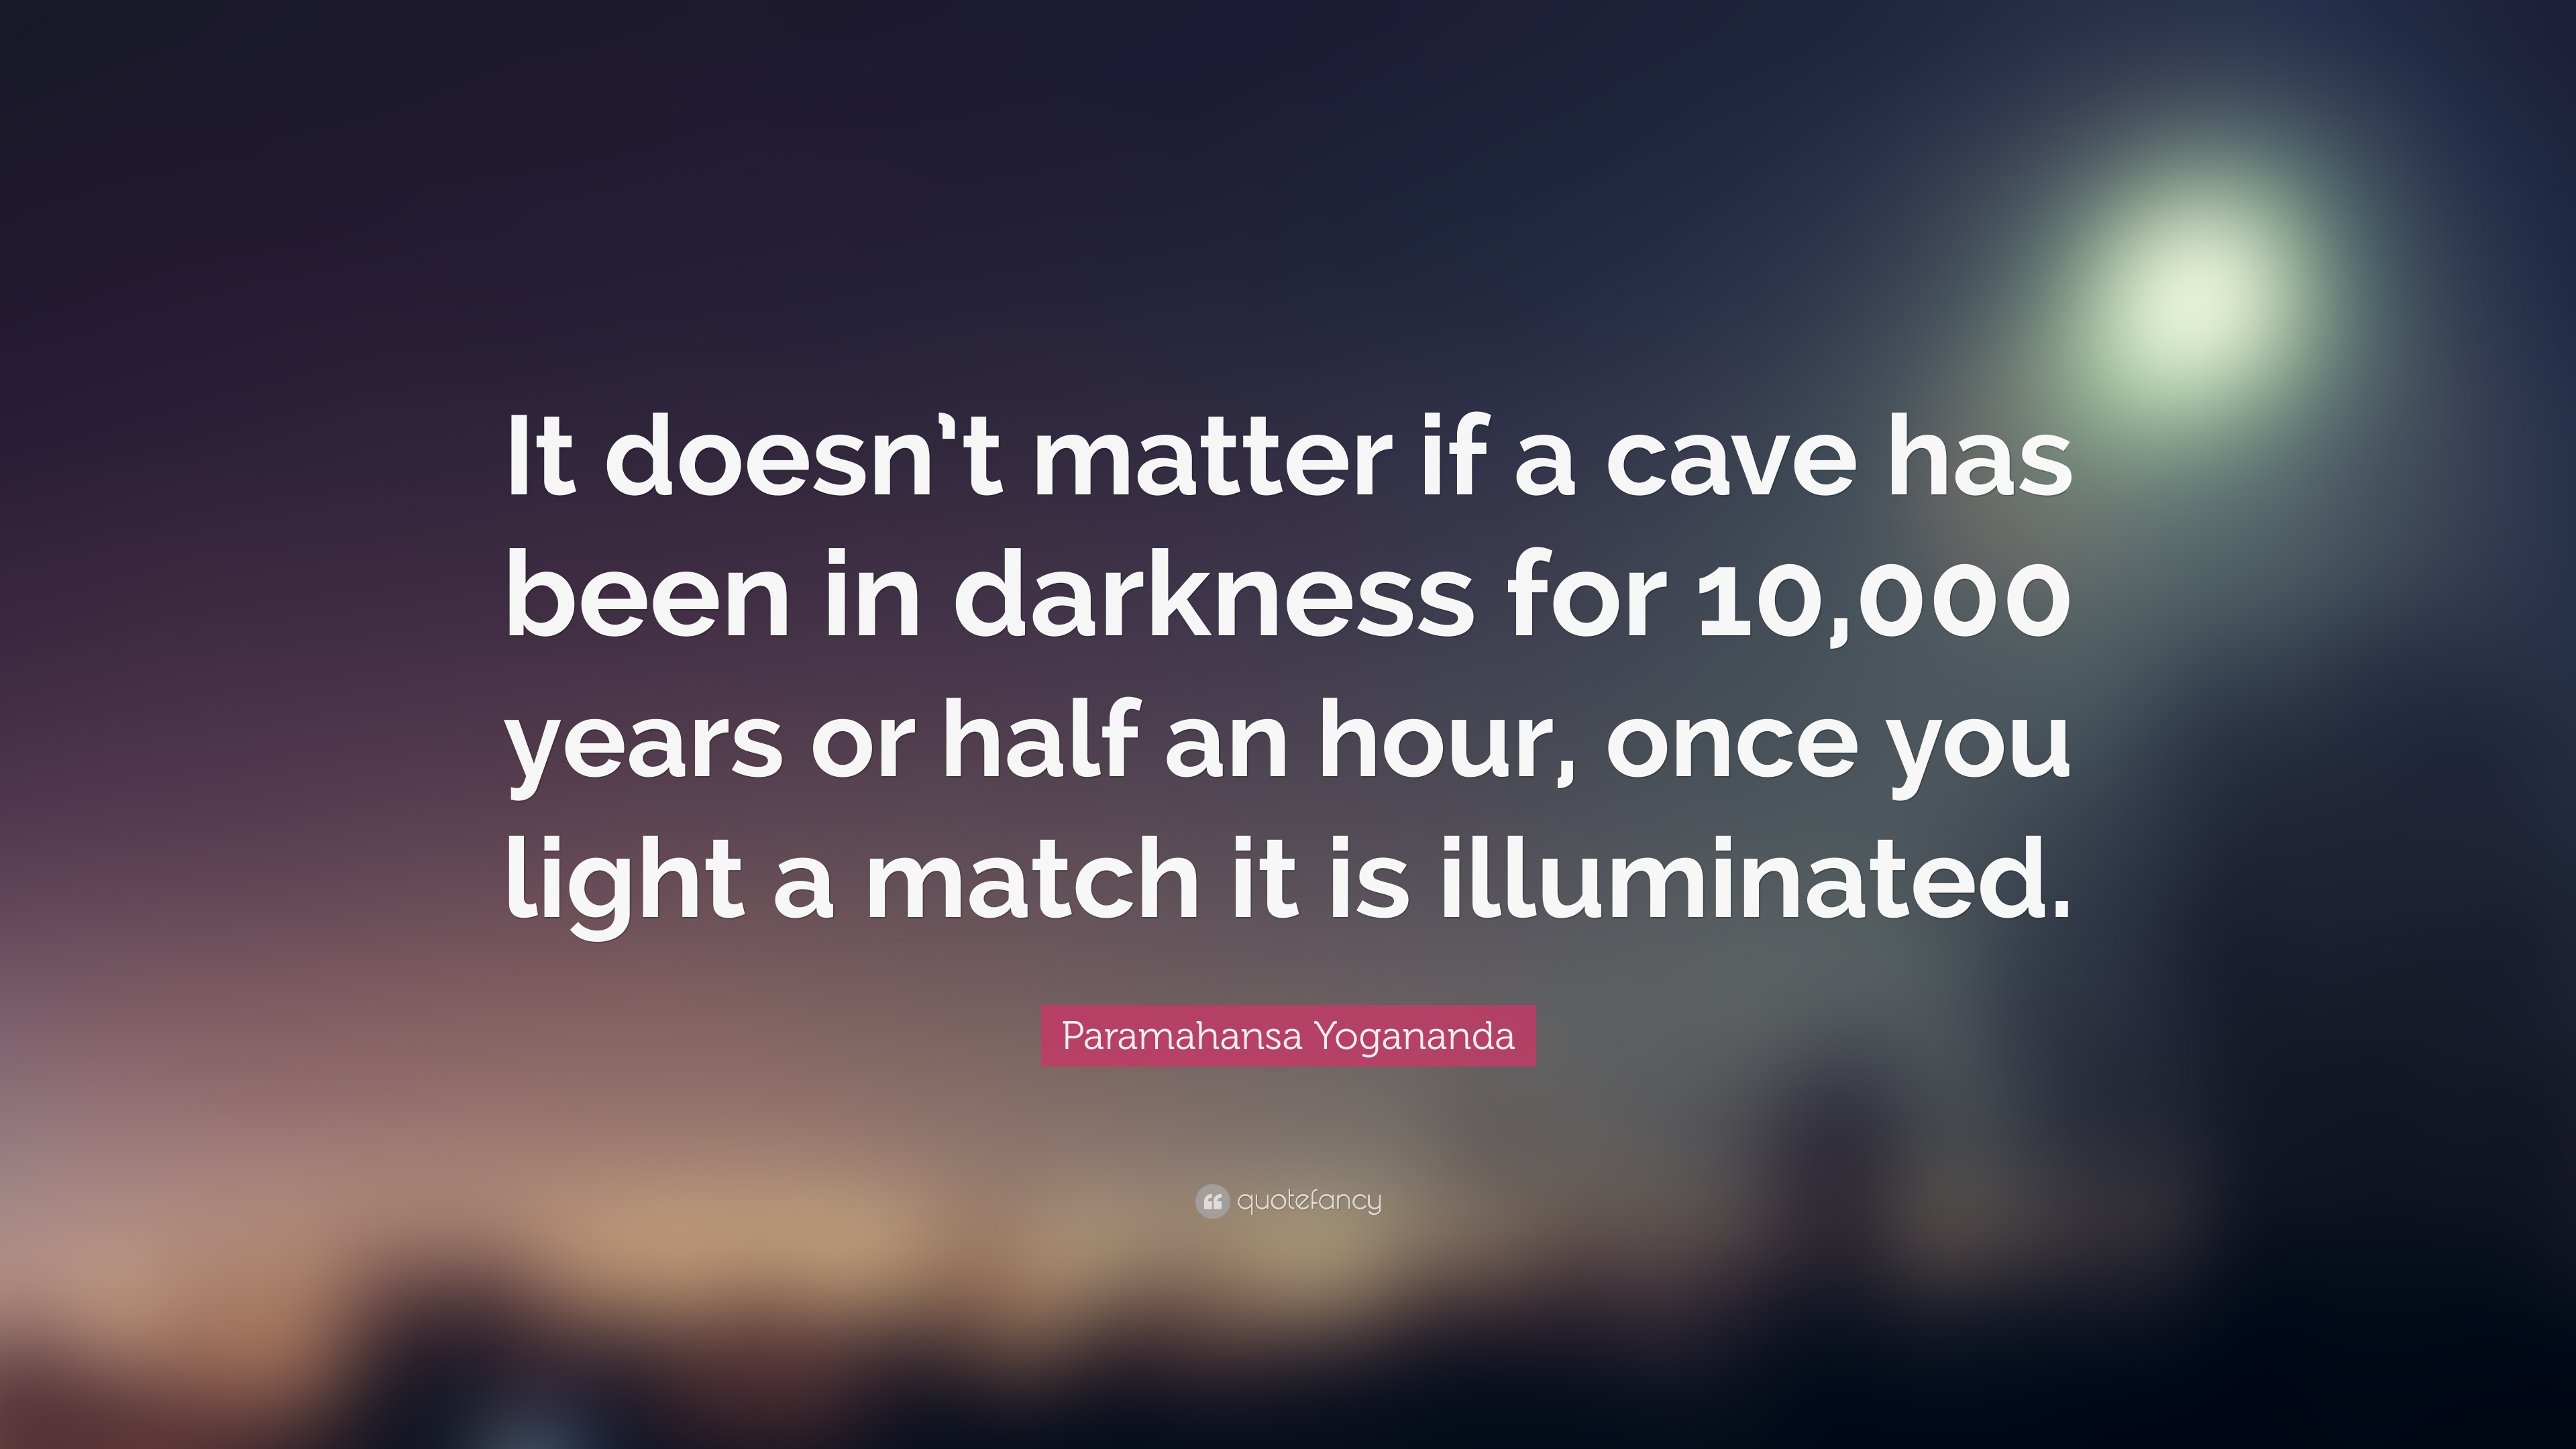 Lawyer Quotes Wallpapers Paramahansa Yogananda Quote It Doesn T Matter If A Cave